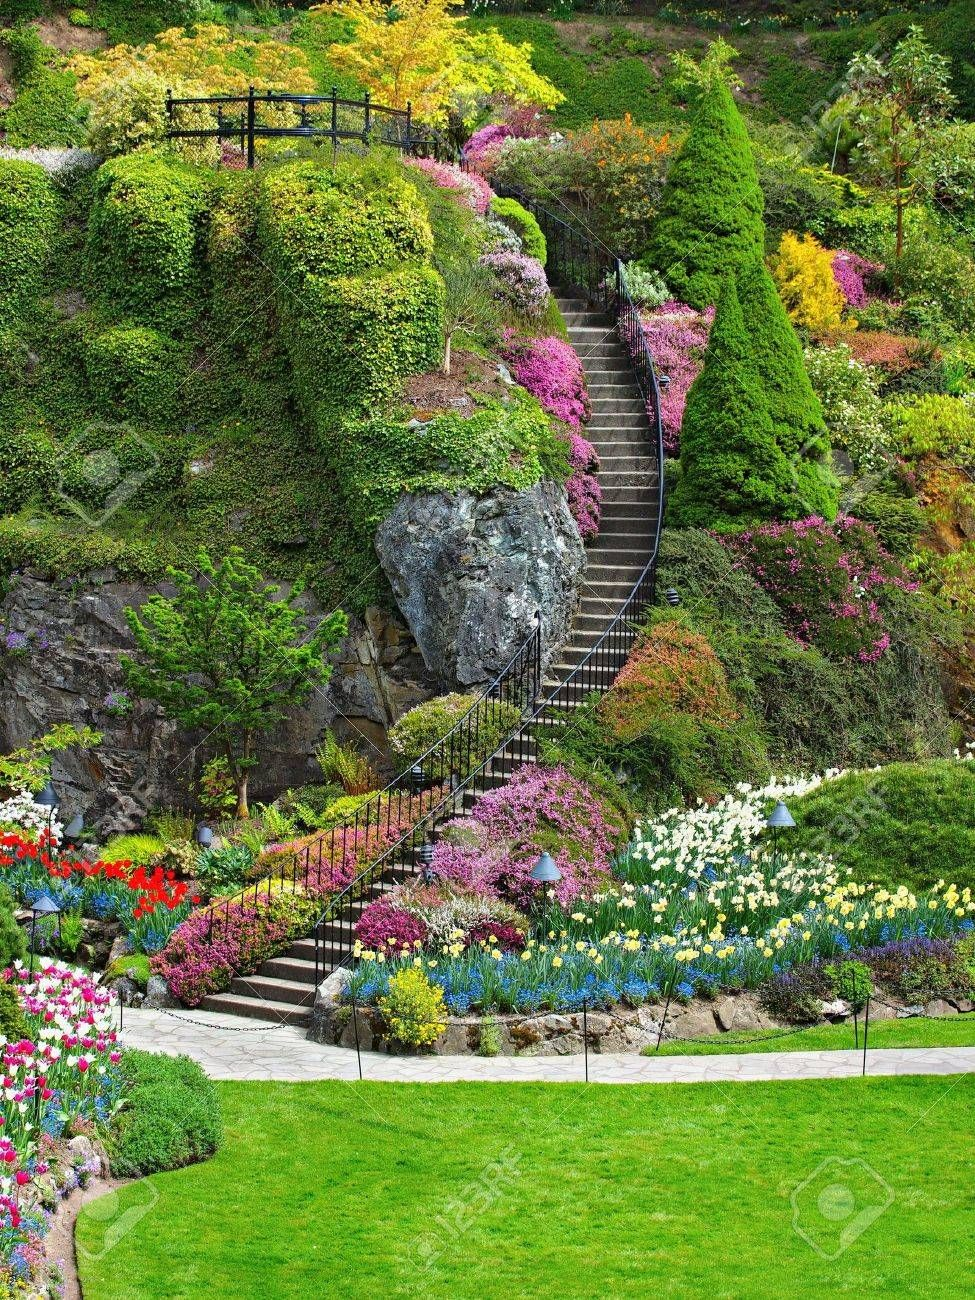 74ae6c184e97d8aca52fc2b807bd0531 - Victoria And Butchart Gardens From Vancouver